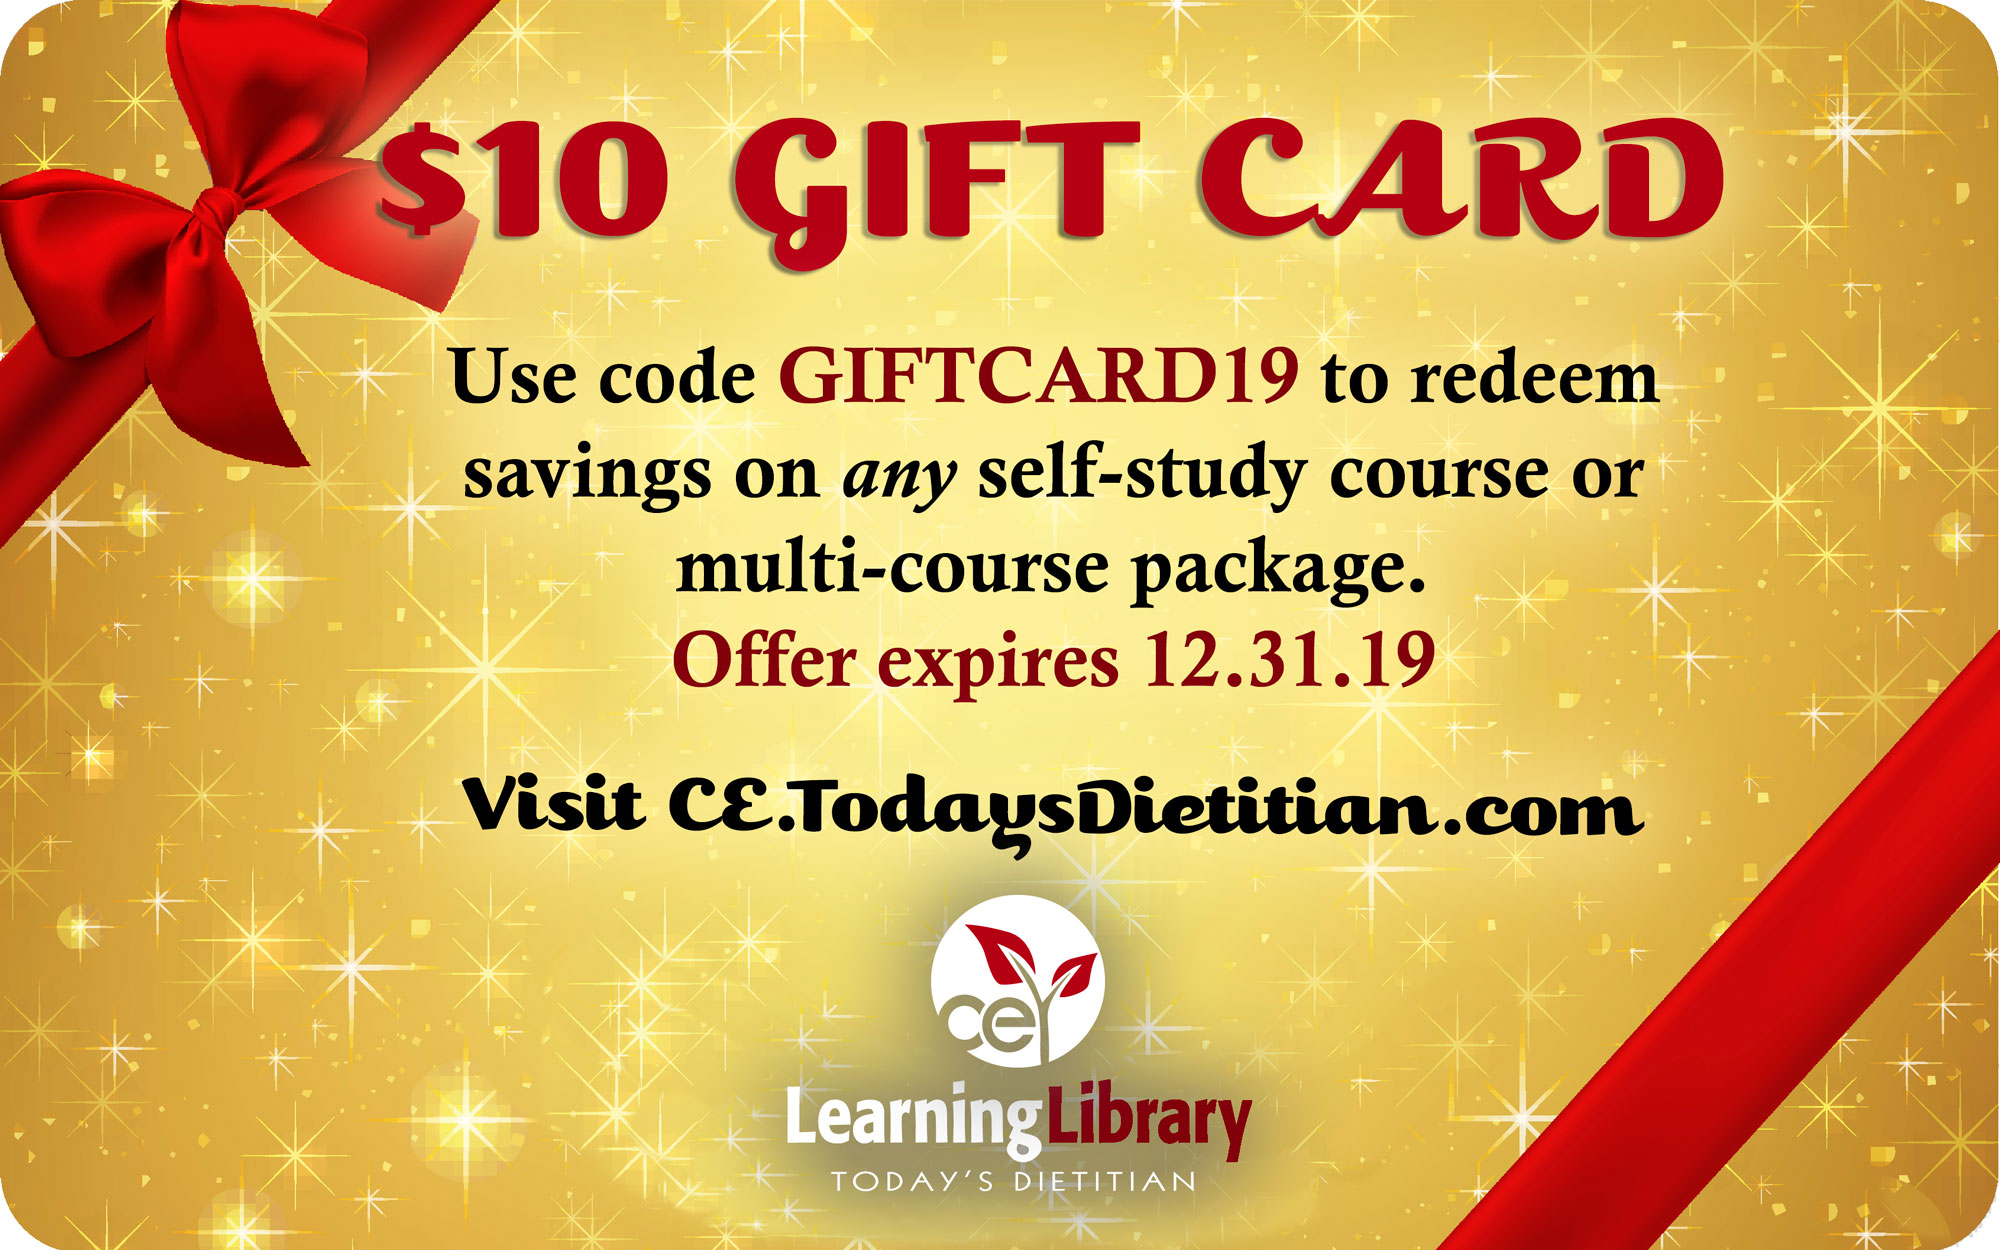 $10 Gift Card | Use code GIFTCARD19 to redeem savings on any self-study course, recorded webinar, or multi-course package. Offer expires 12.31.19. Visit CE.TodaysDietitian.com